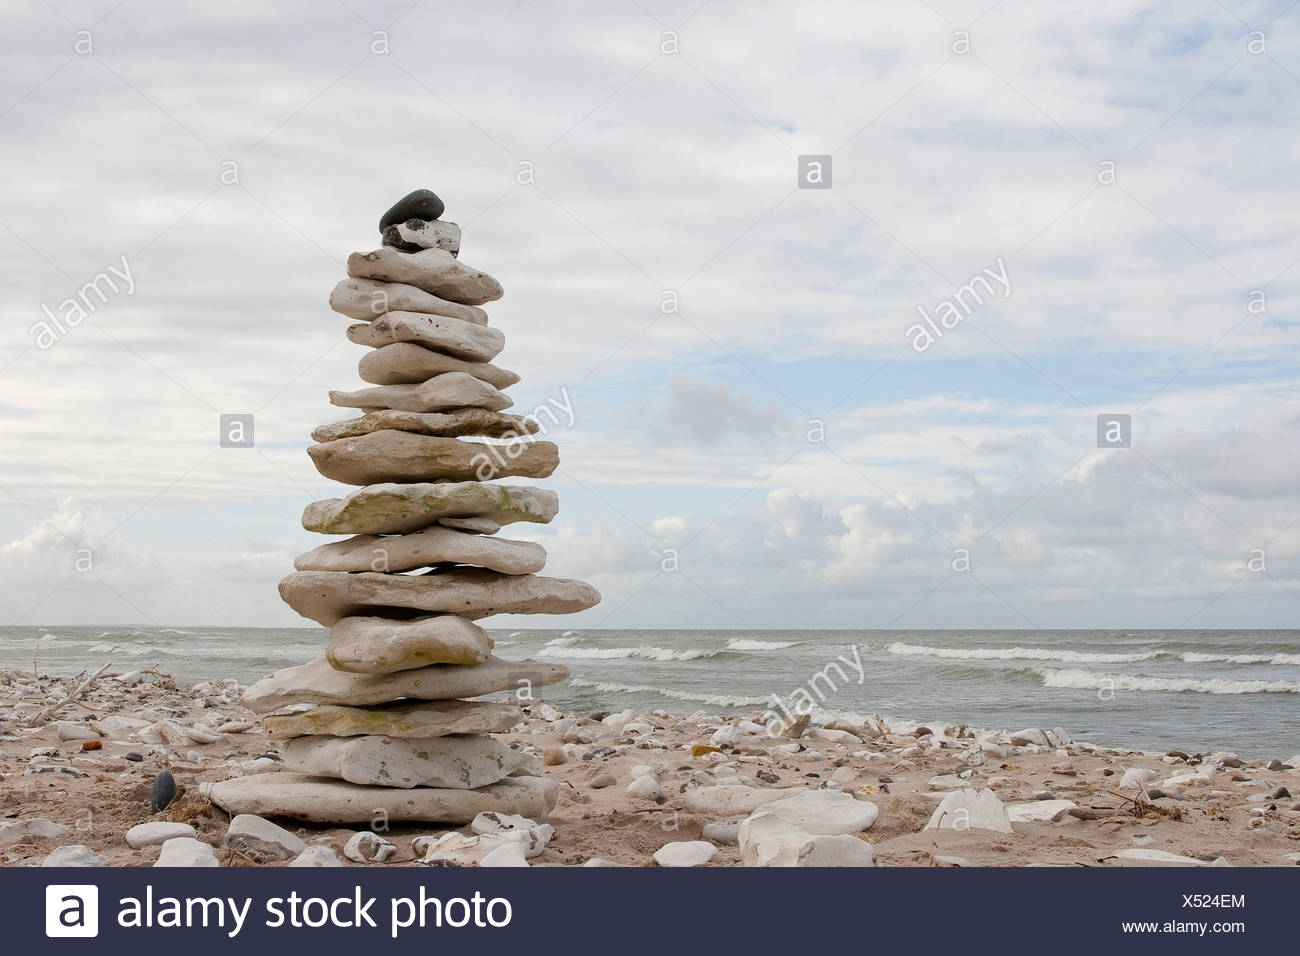 pile of stones on the beach, nature art, Germany - Stock Image